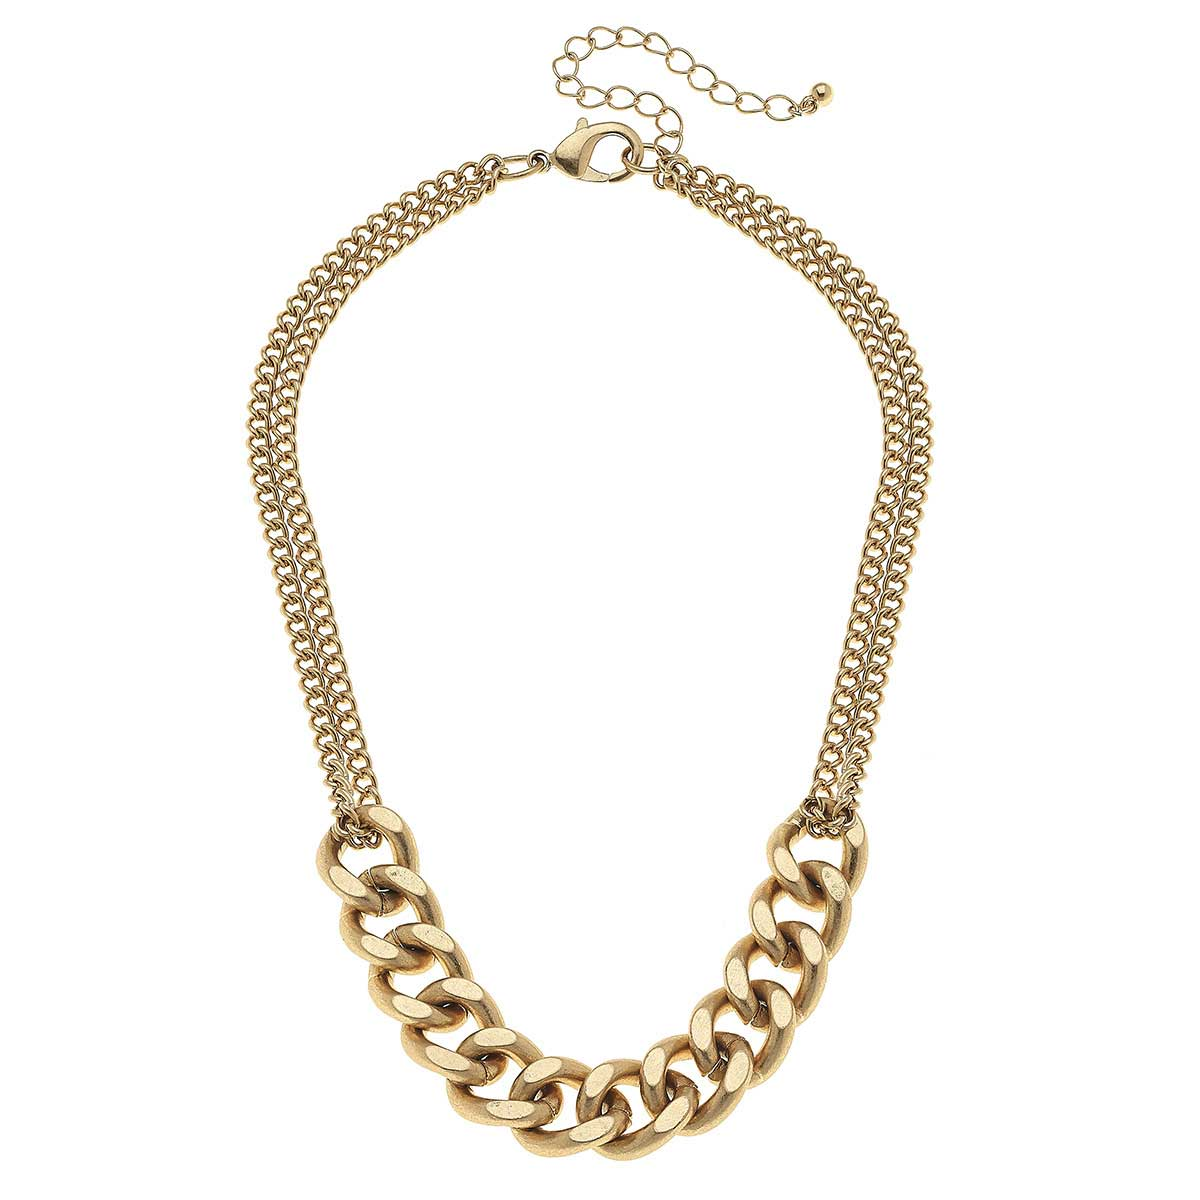 Maya Curb Chain Necklace in Worn Gold